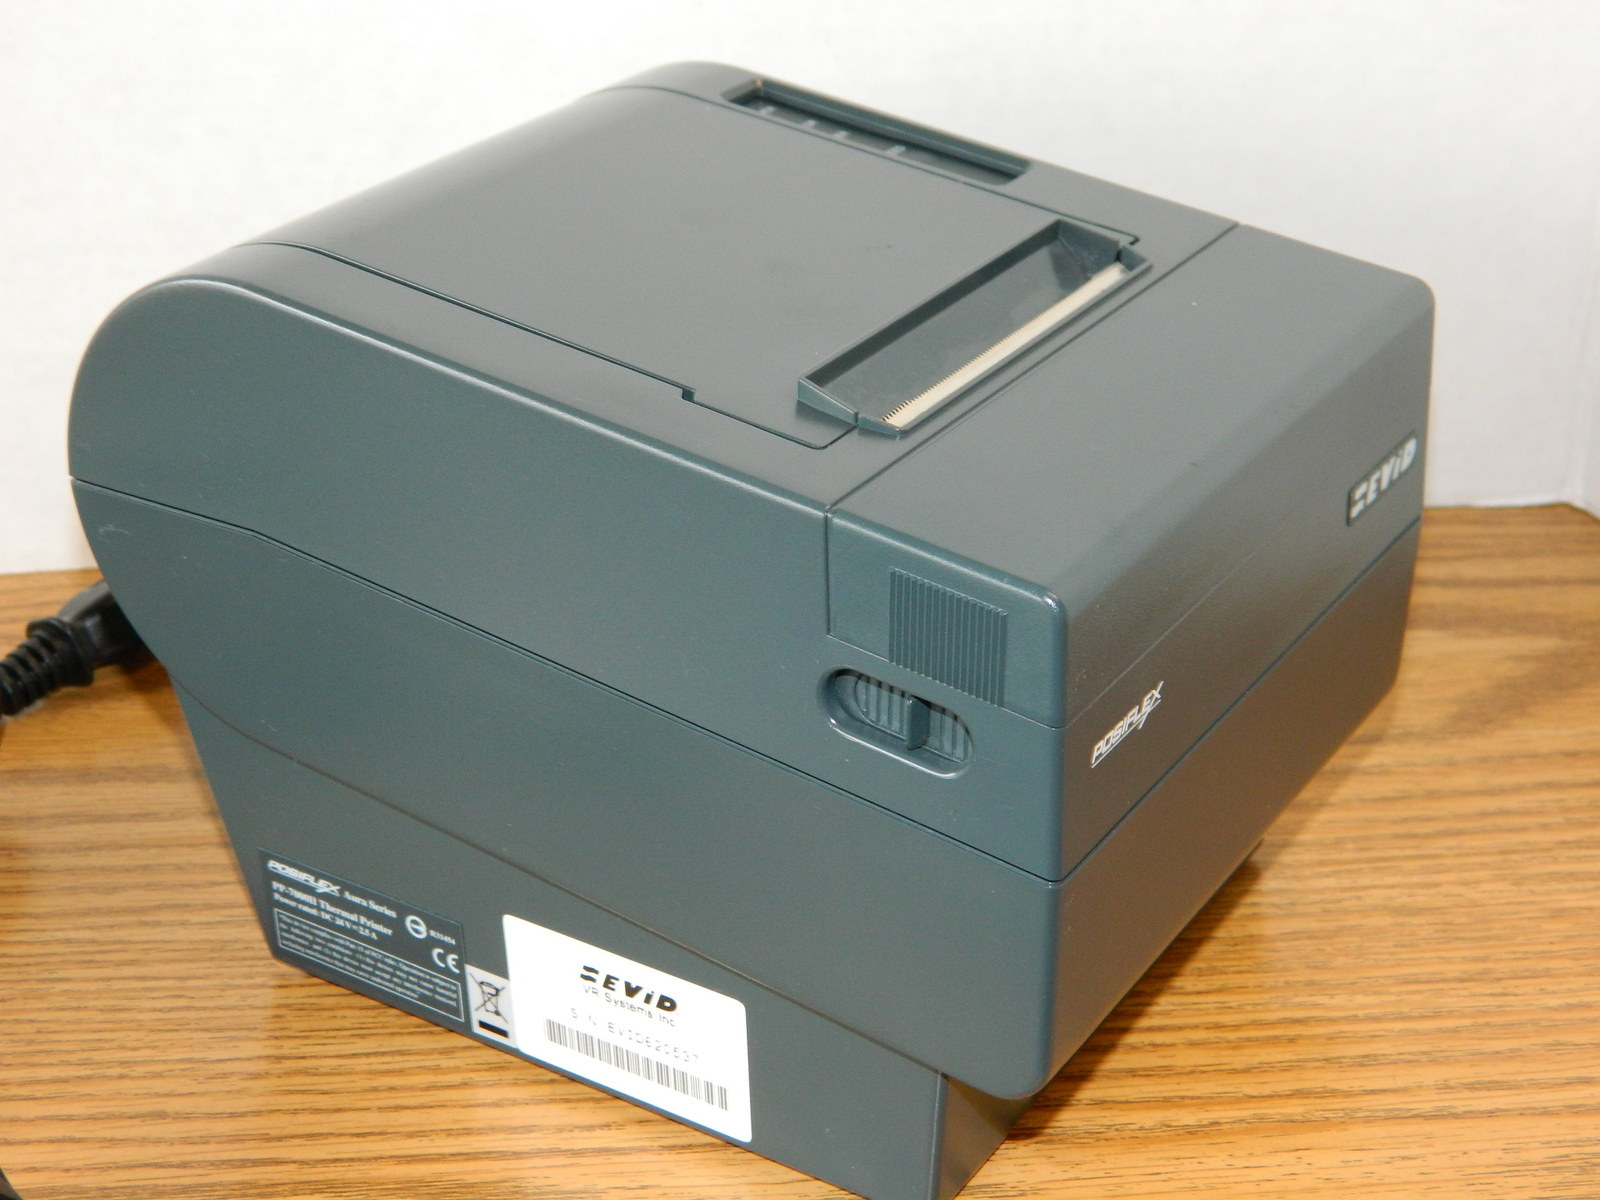 Pp7000 posiflex manual